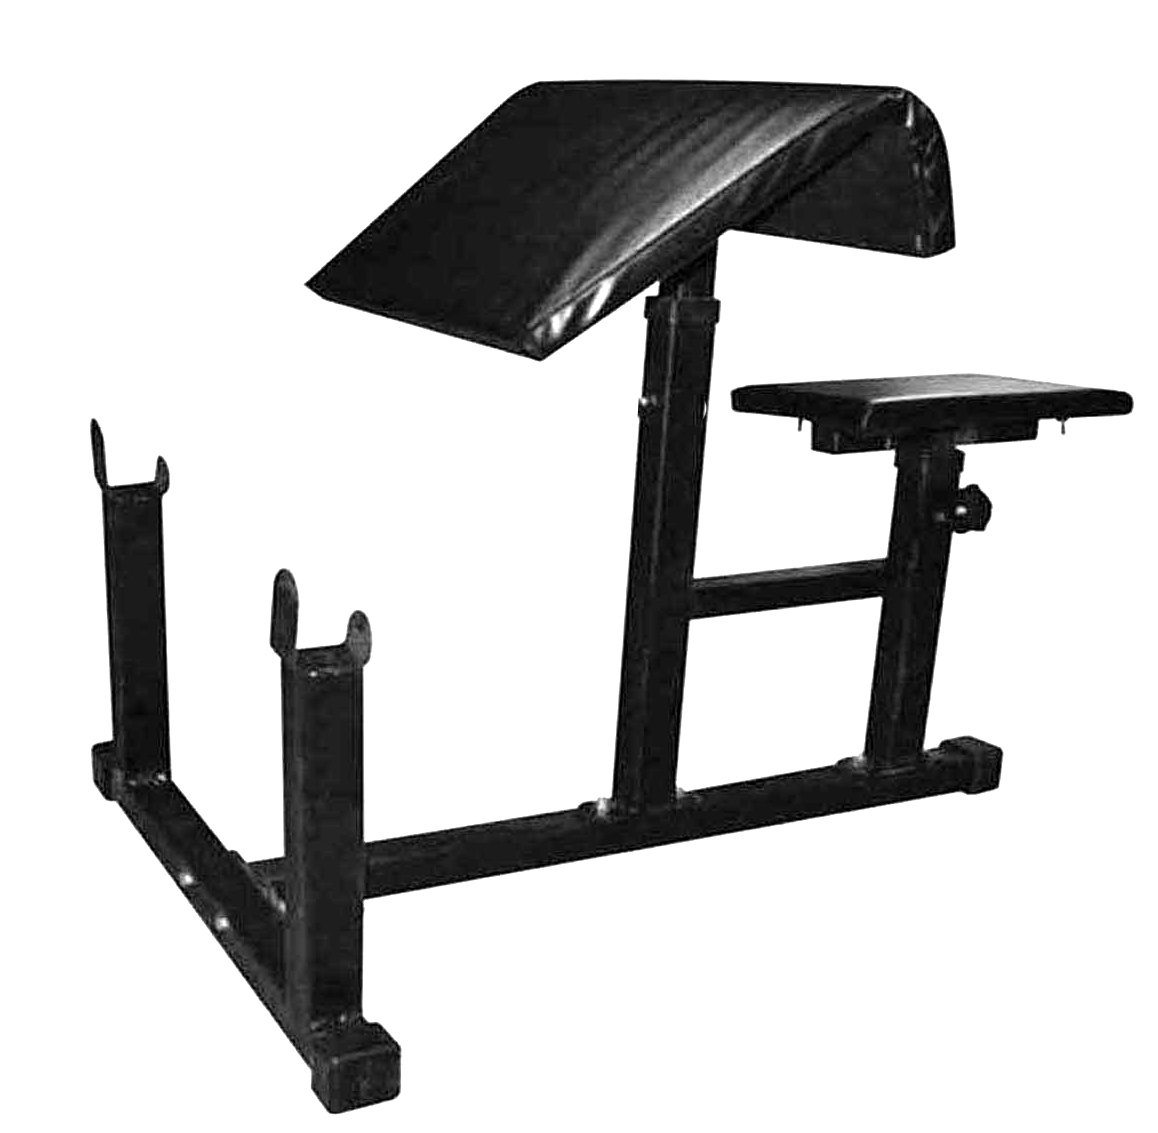 Protoner Preacher curl bench with adjustable seat level